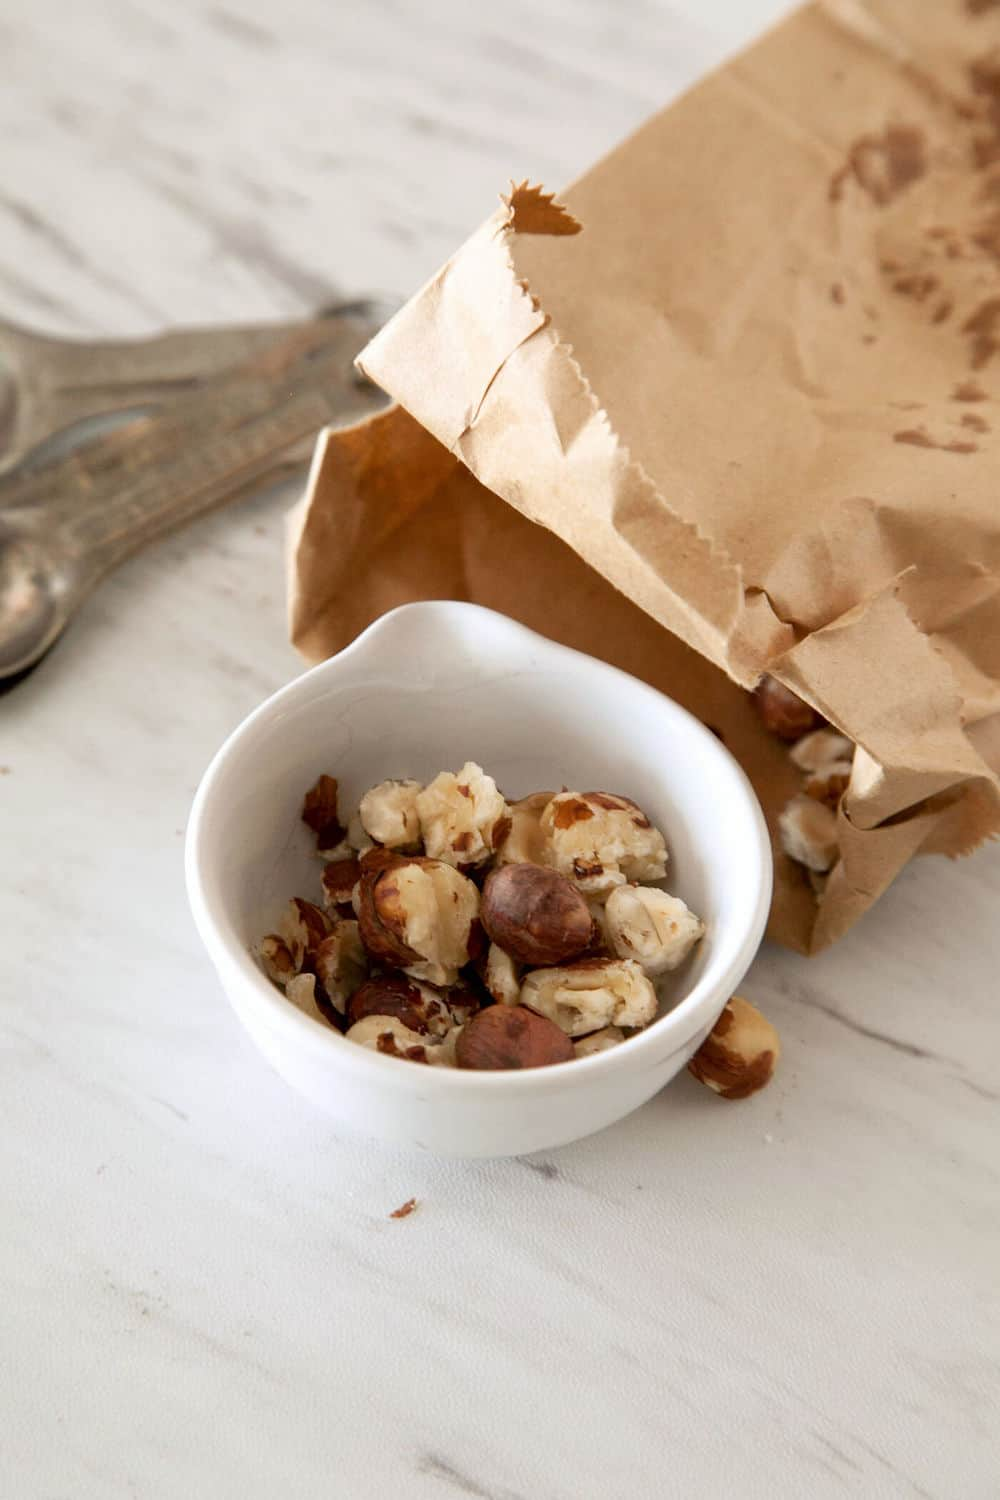 Hazelnuts out of a brown paper bag